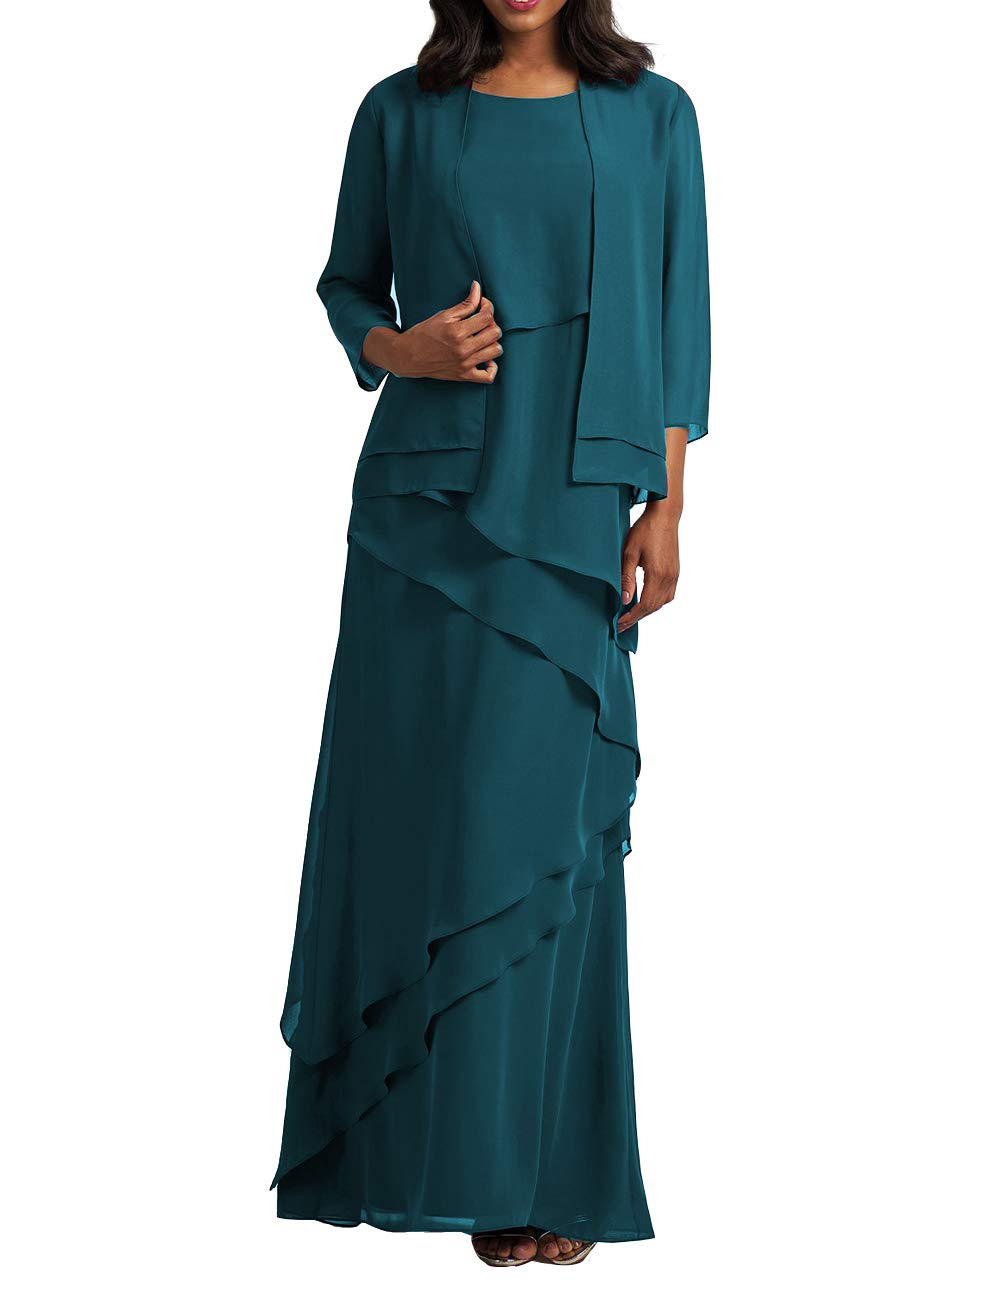 Mother of The Bride Dresses with Jacket Chiffon Prom Dress Plus Size Formal  Evening Gowns Tiered Teal US 20W